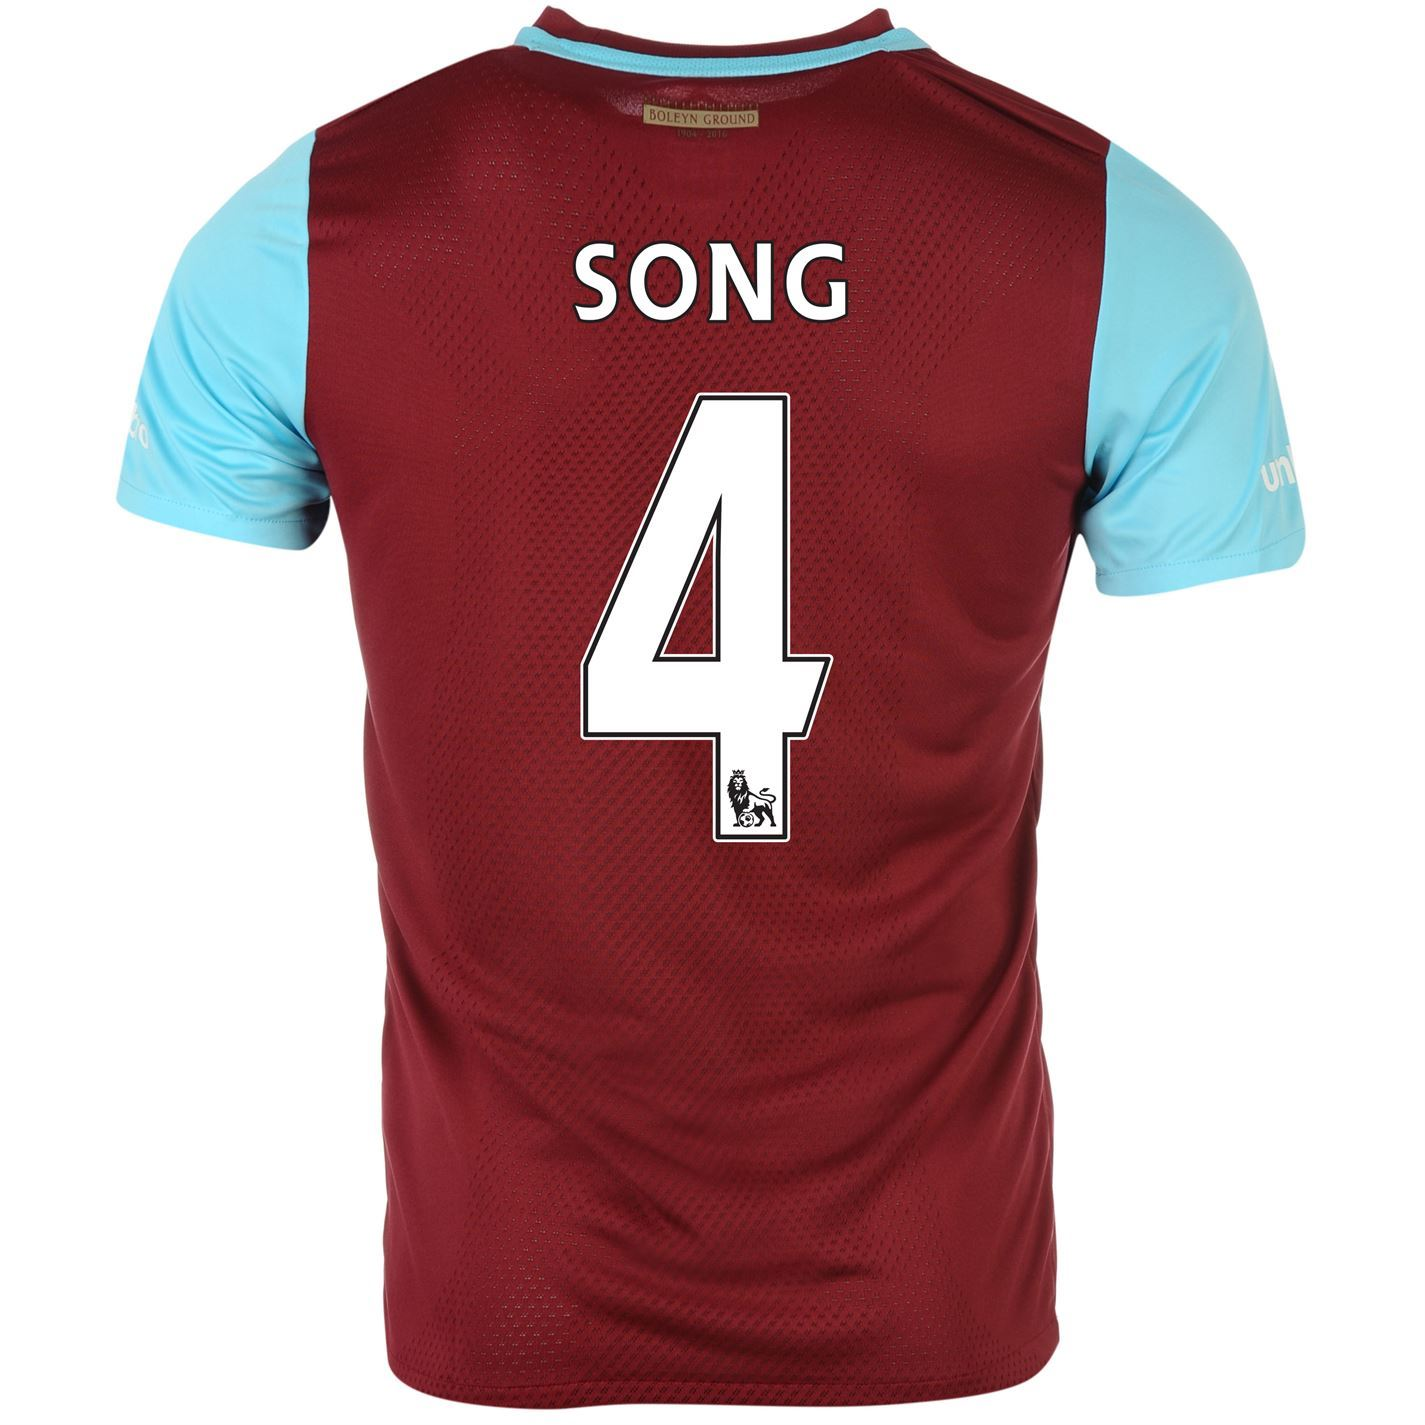 Umbro West Ham United Song 4 Home Jersey 2015 2016 Mens